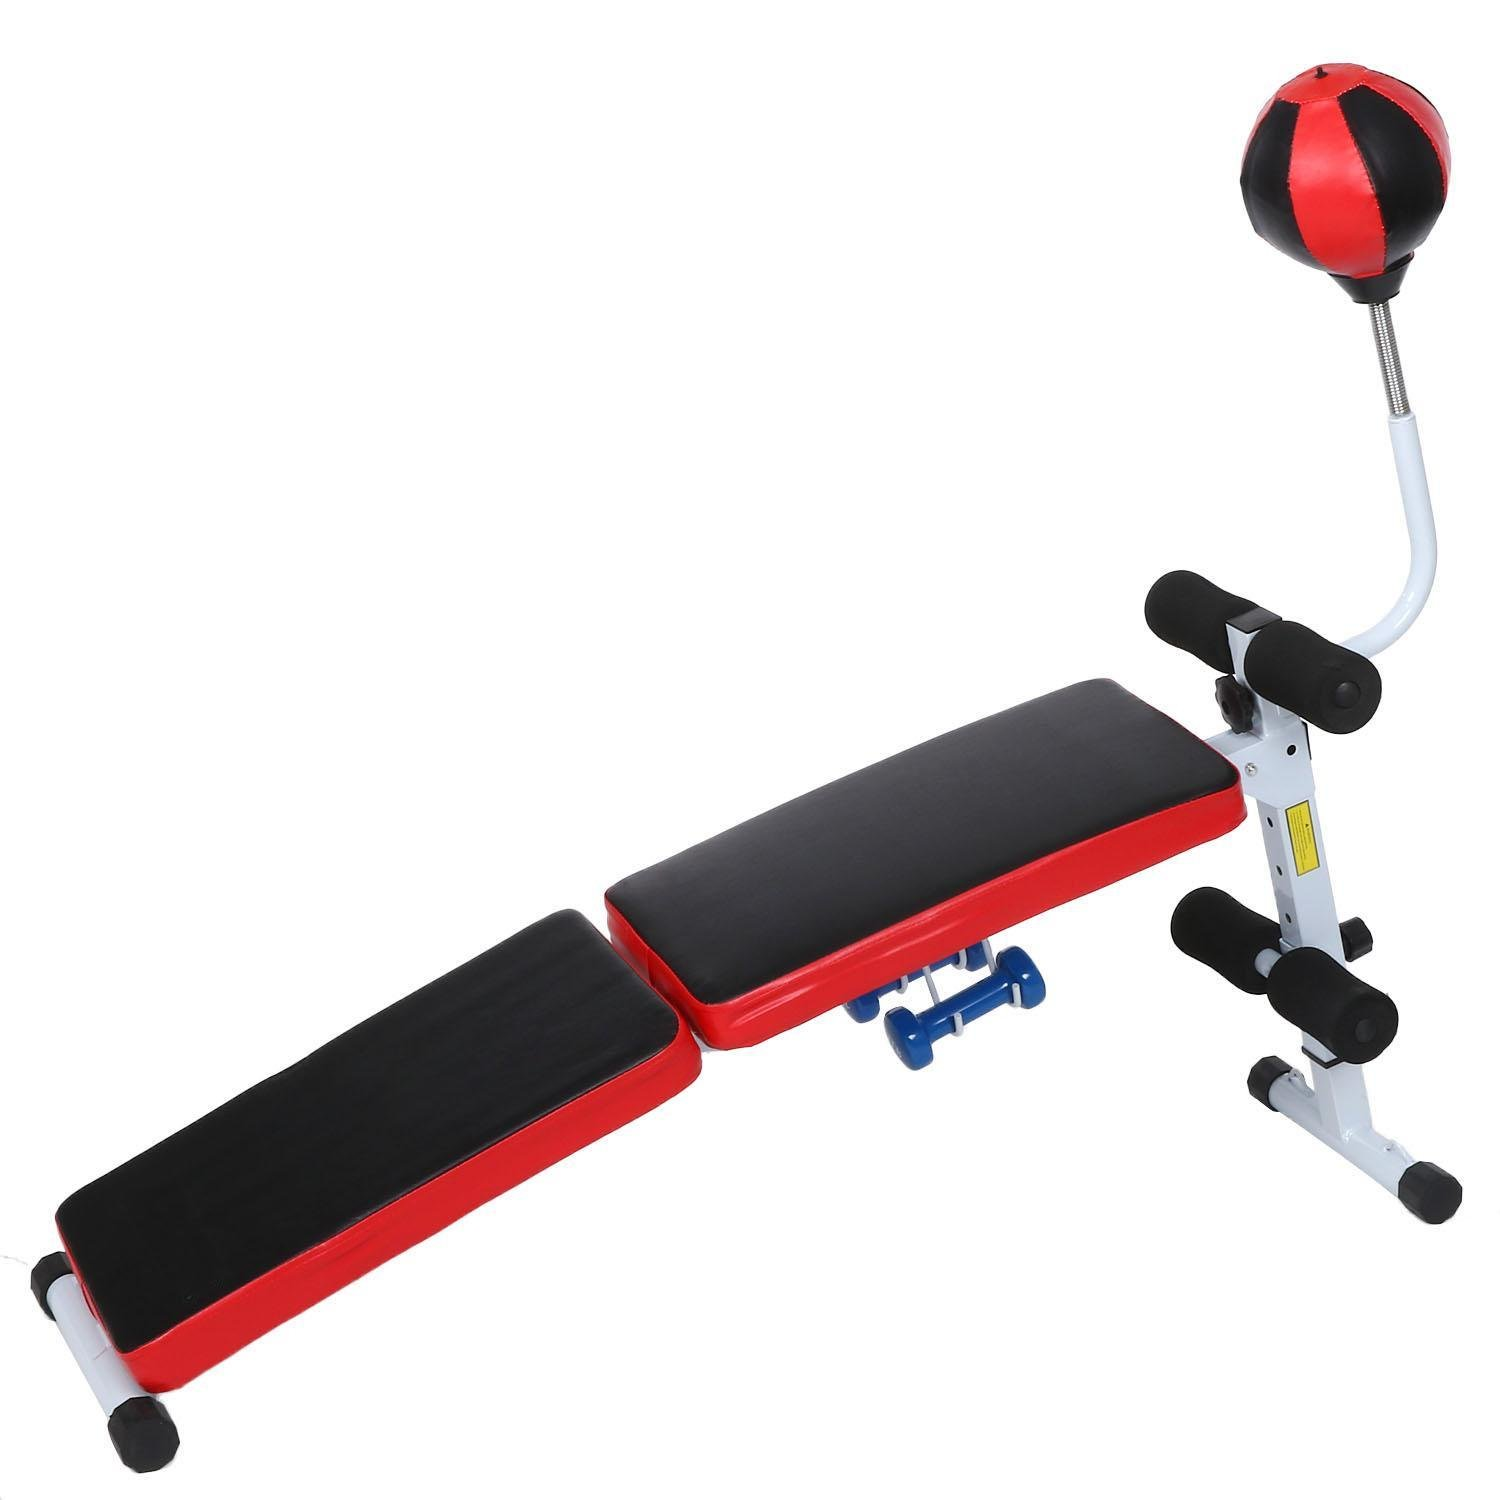 Sholdnut Adjustable Sit Up Bench Workout Utility Abdominal Crunch Board Weight Lifting with Speedball for Home Gym(US STOCK)